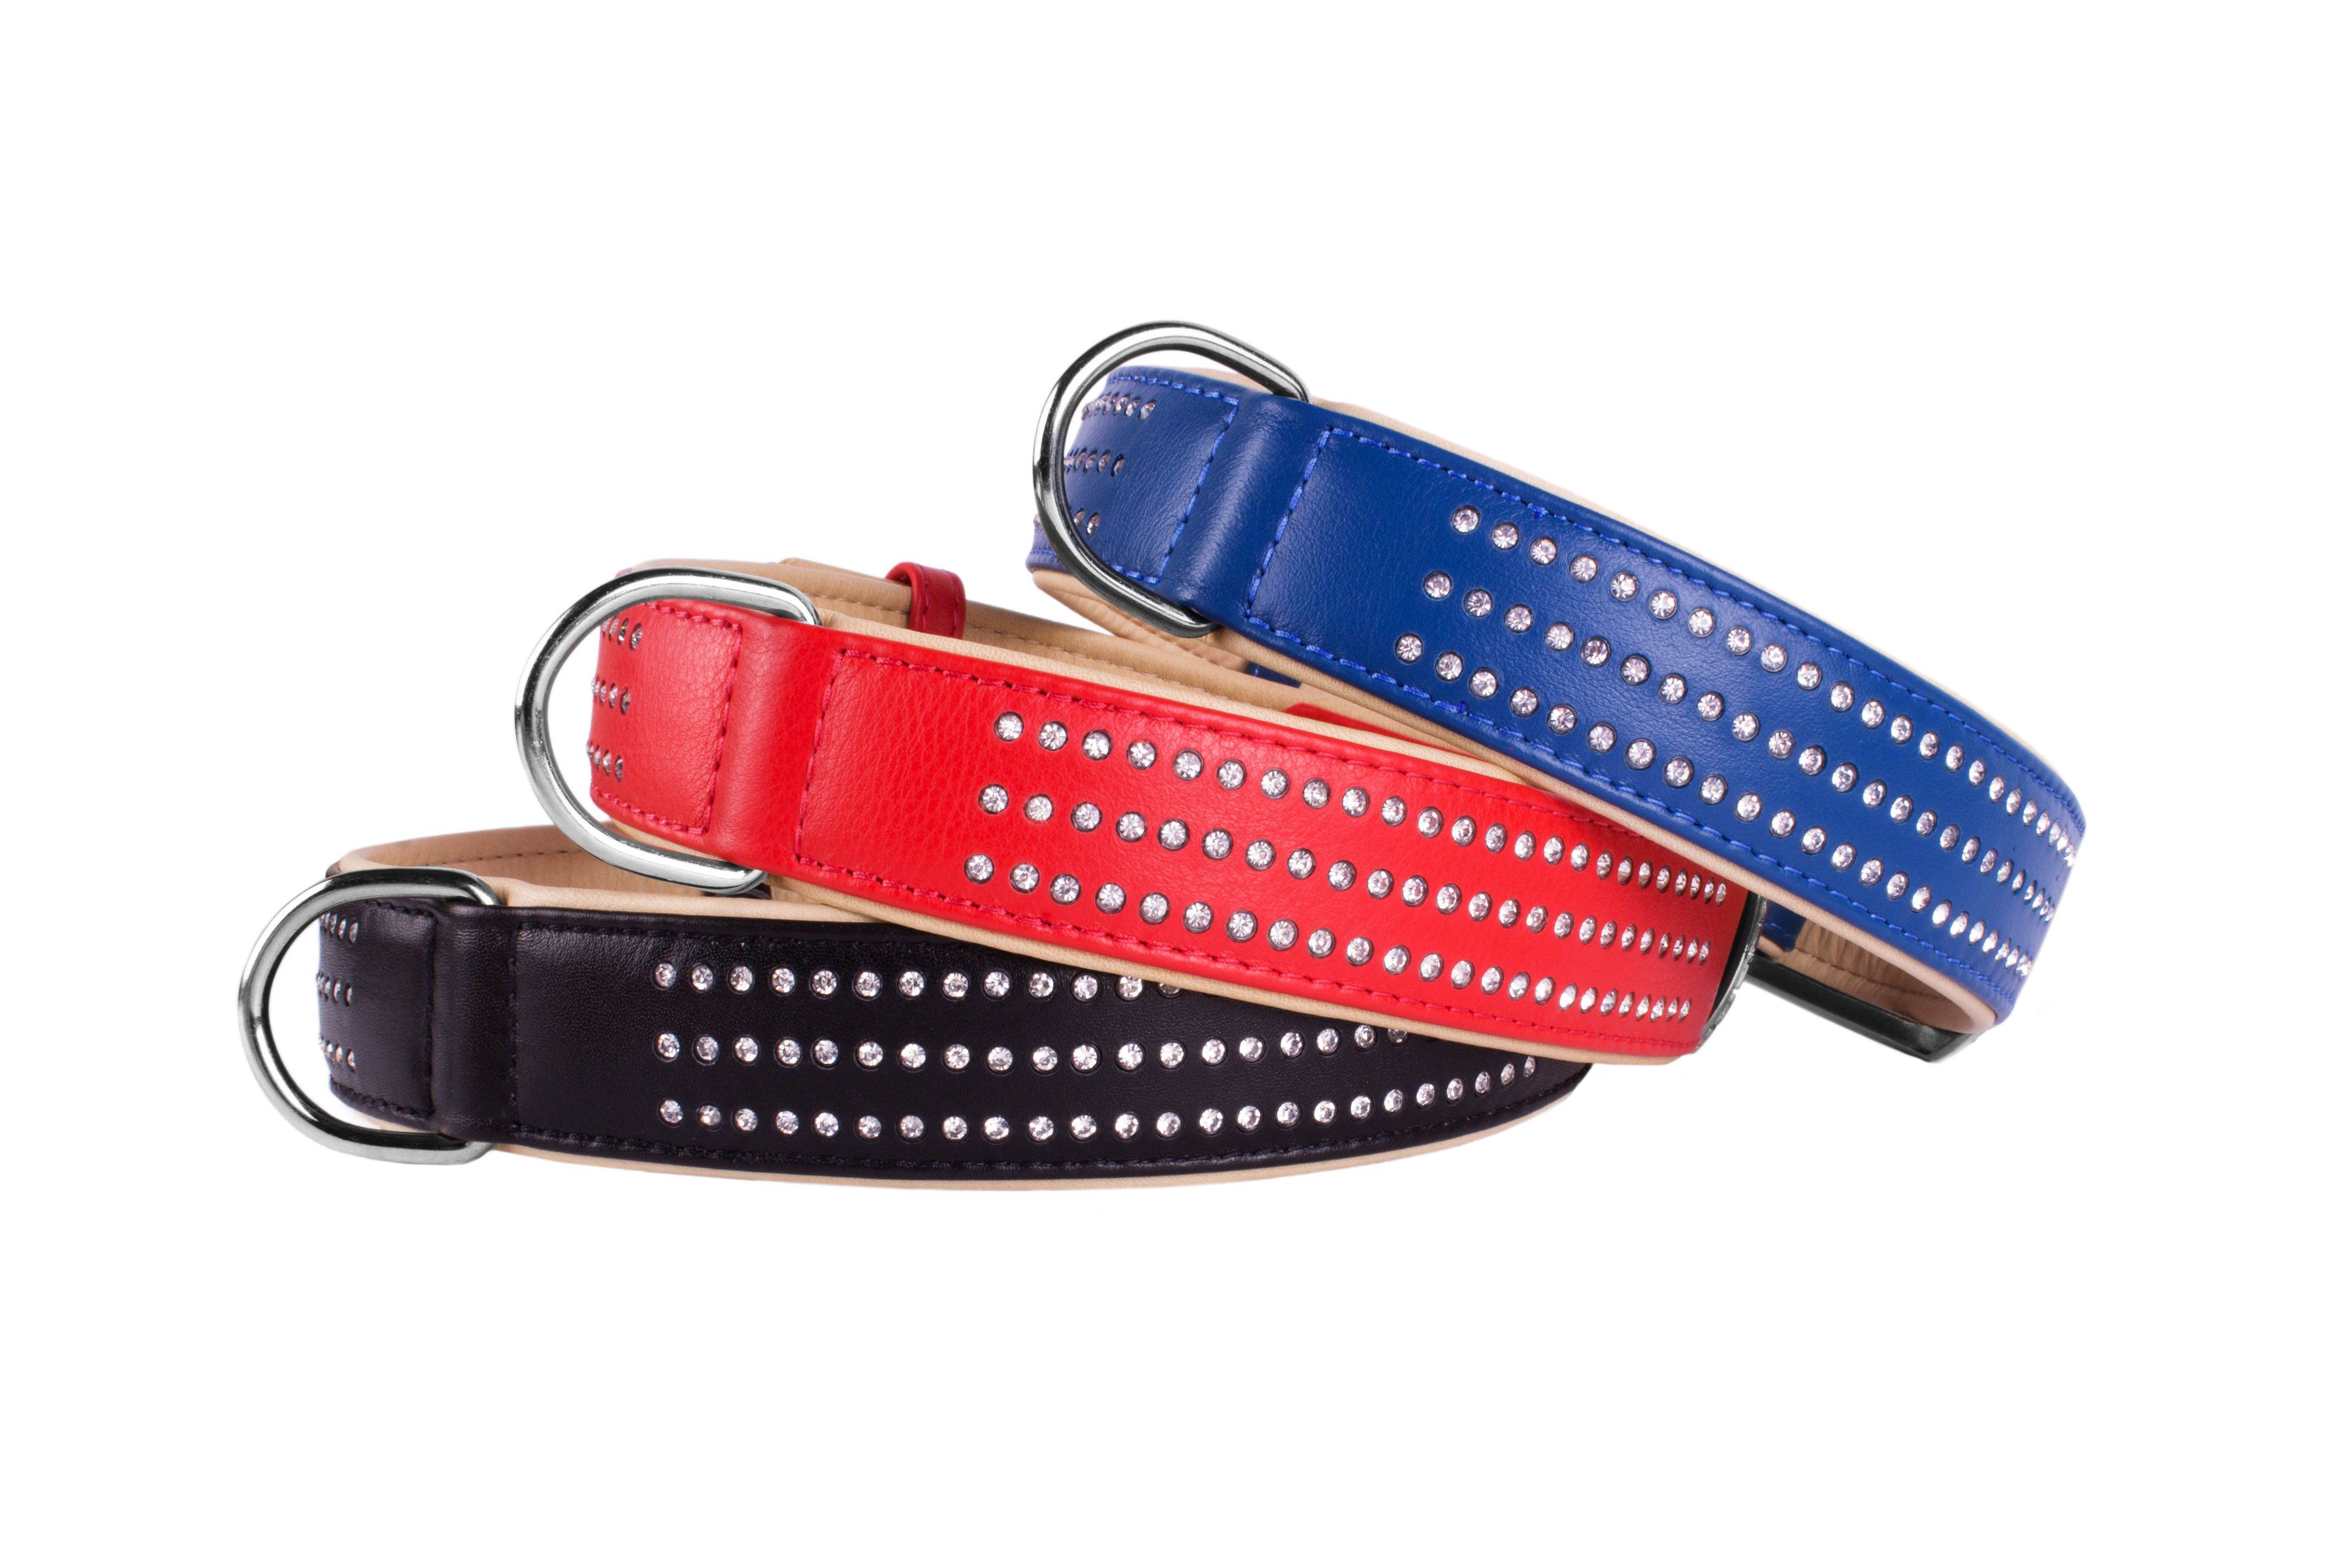 Leather Dog Collar with Crystals- colors black blue red collar